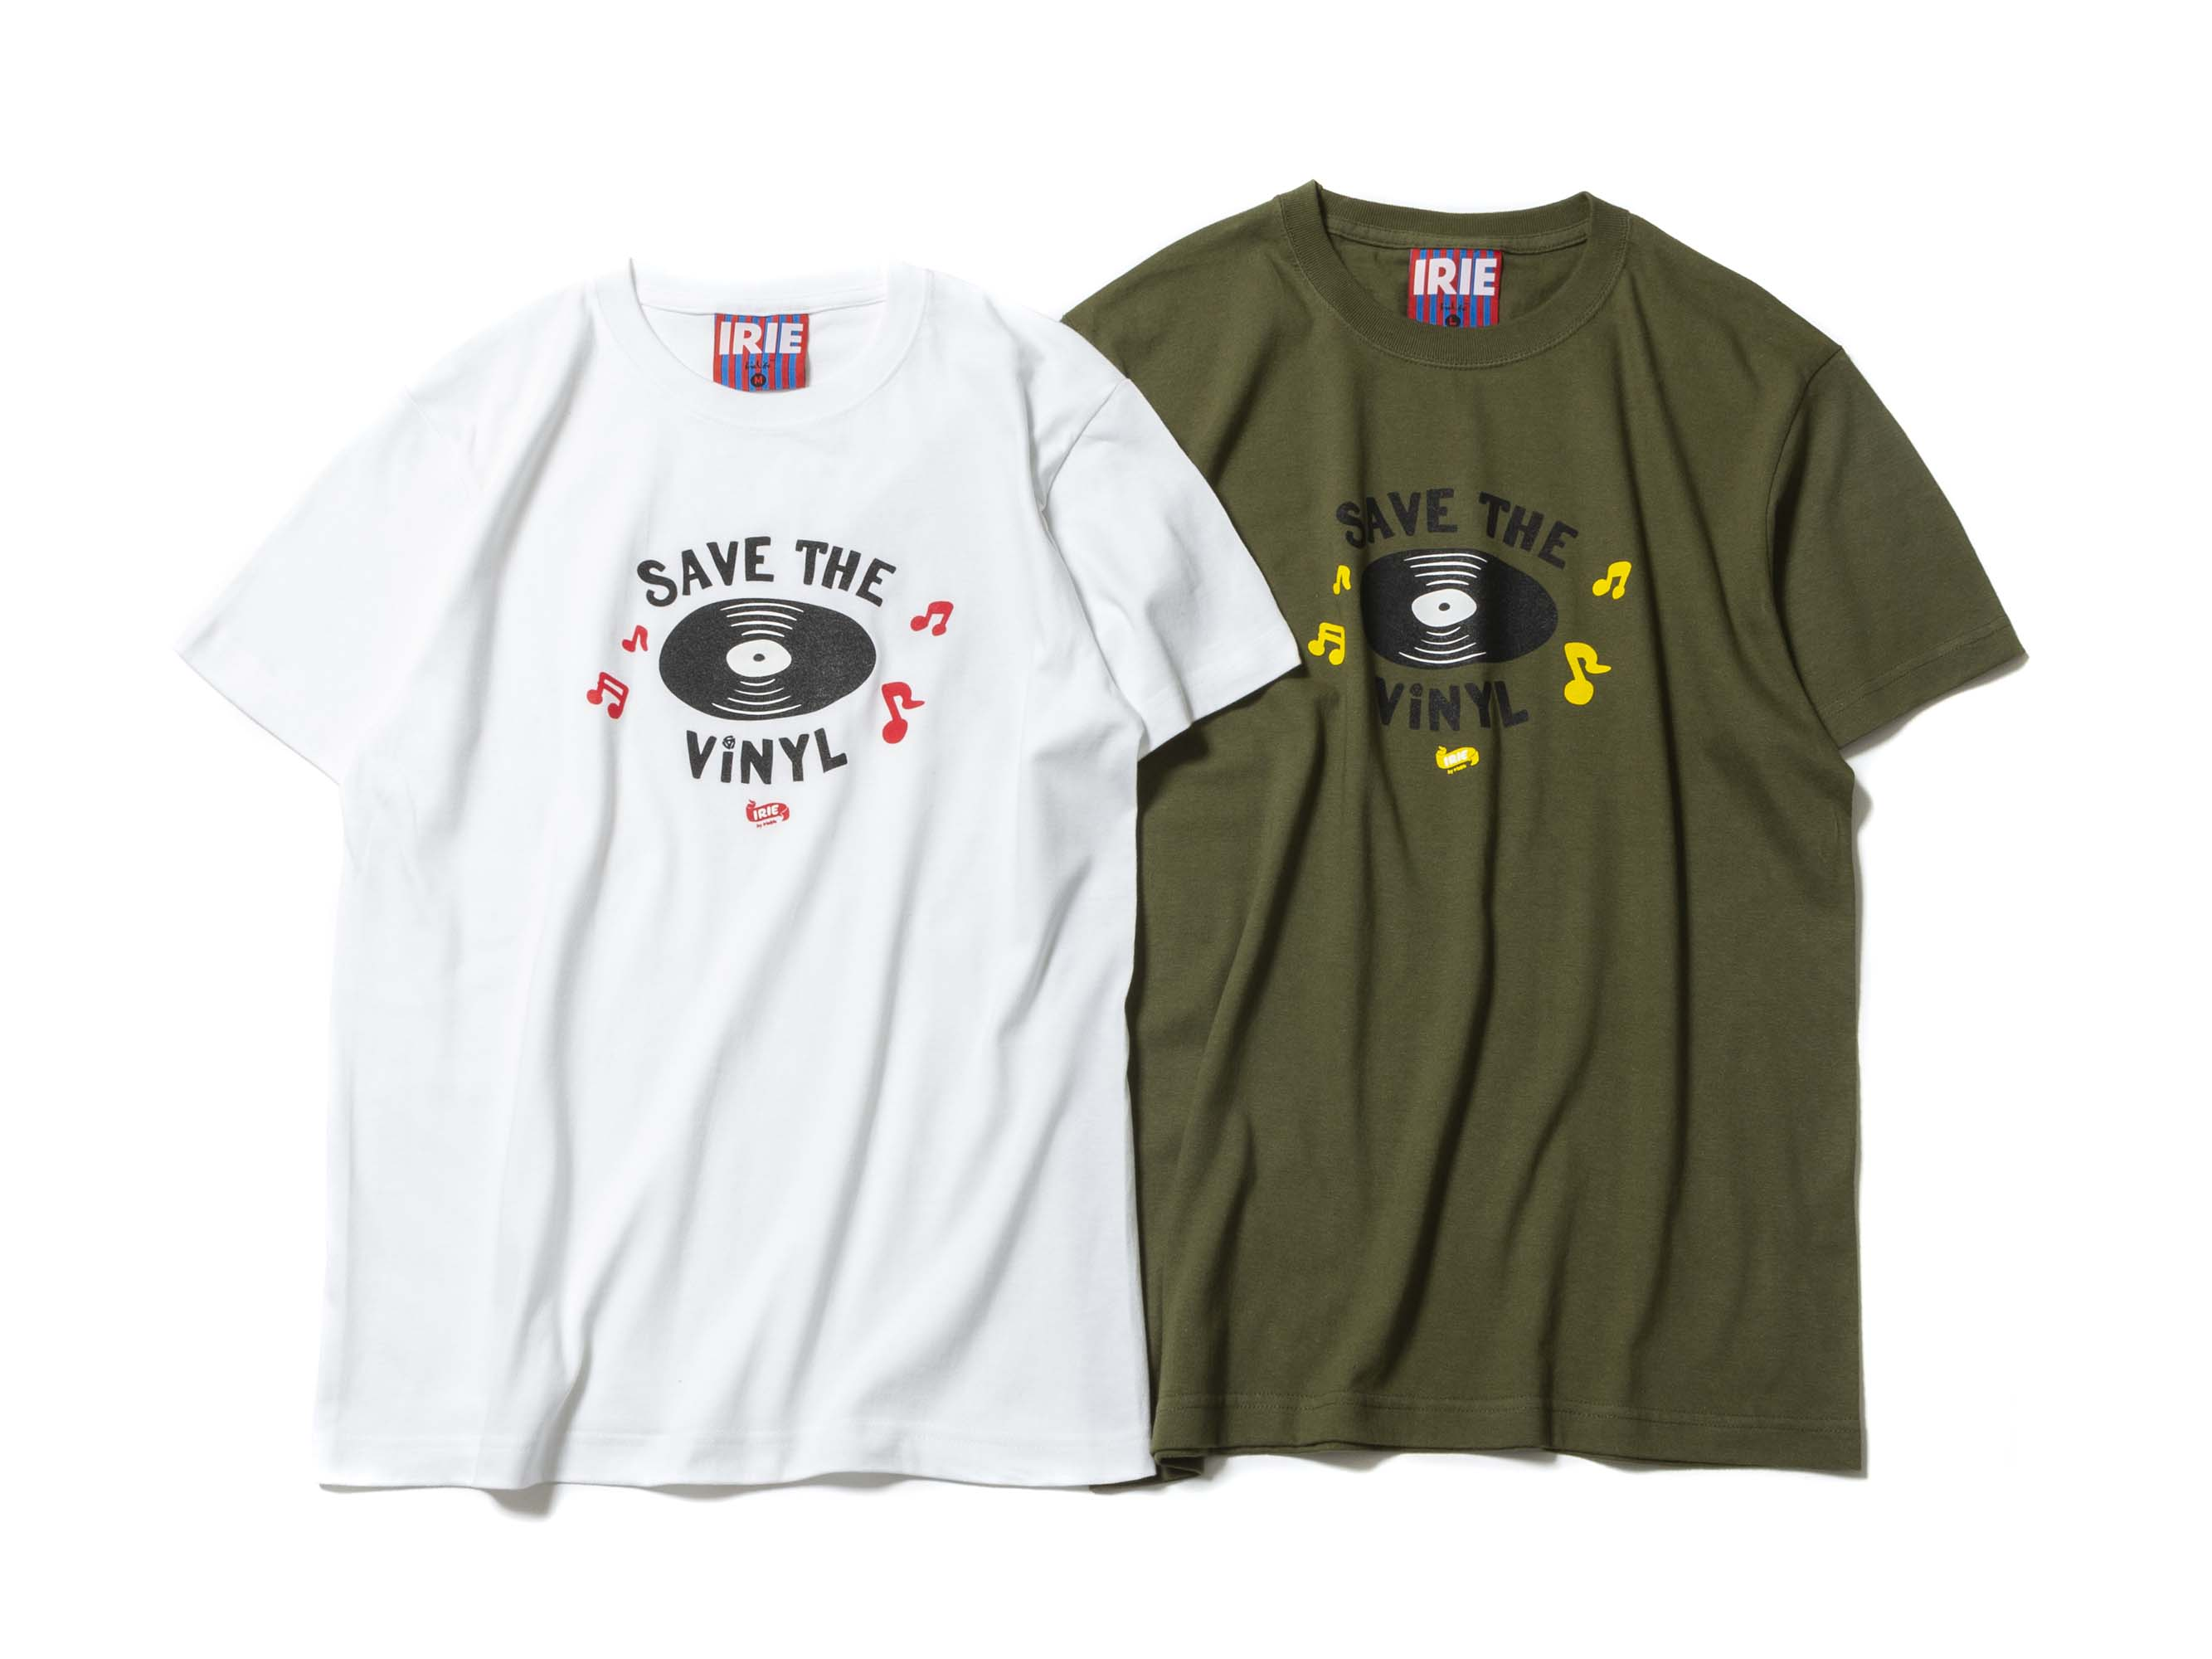 SAVE THE VINYL TEE - IRIE by irielife